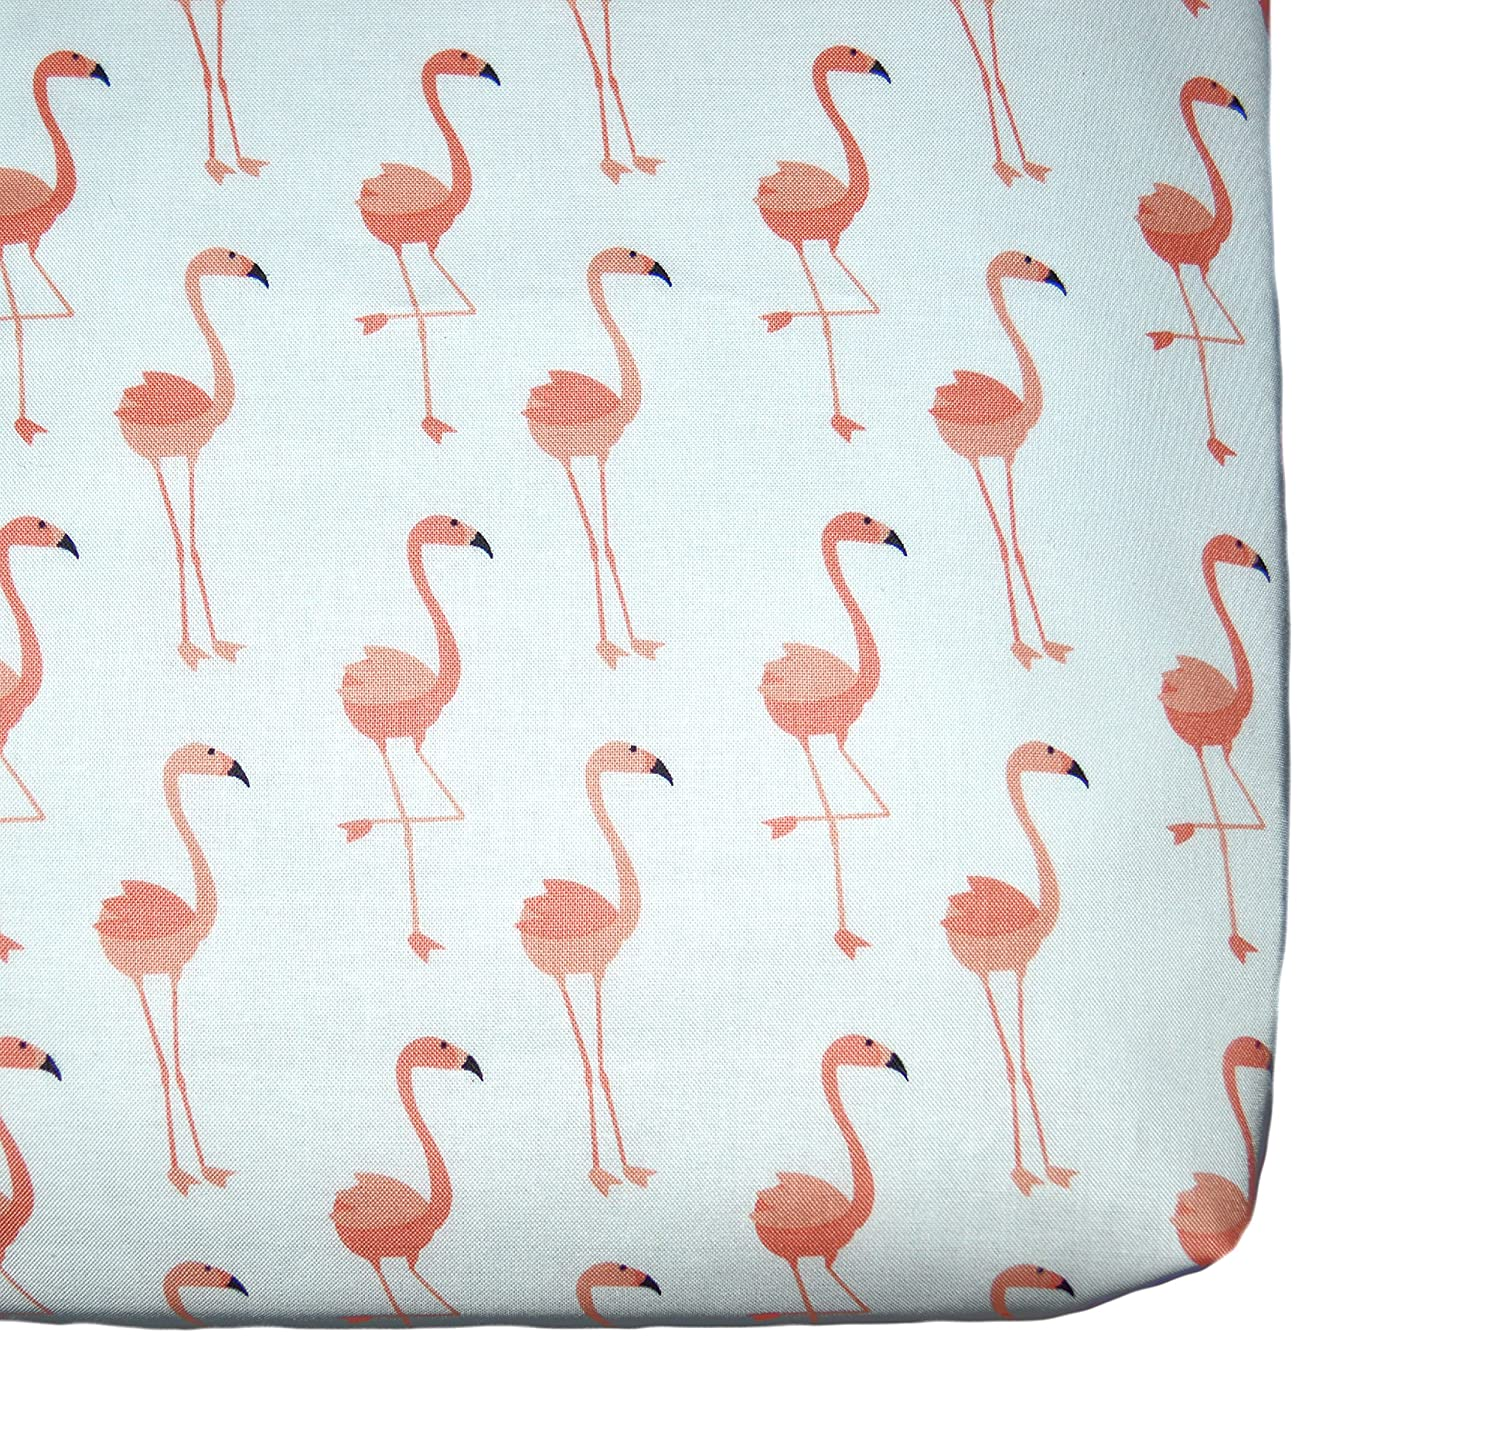 Amazon.com: Flamingos fitted crib sheet, bird nursery theme, coral baby  bedding by Sprinkled With Kisses: Handmade - Amazon.com: Flamingos Fitted Crib Sheet, Bird Nursery Theme, Coral